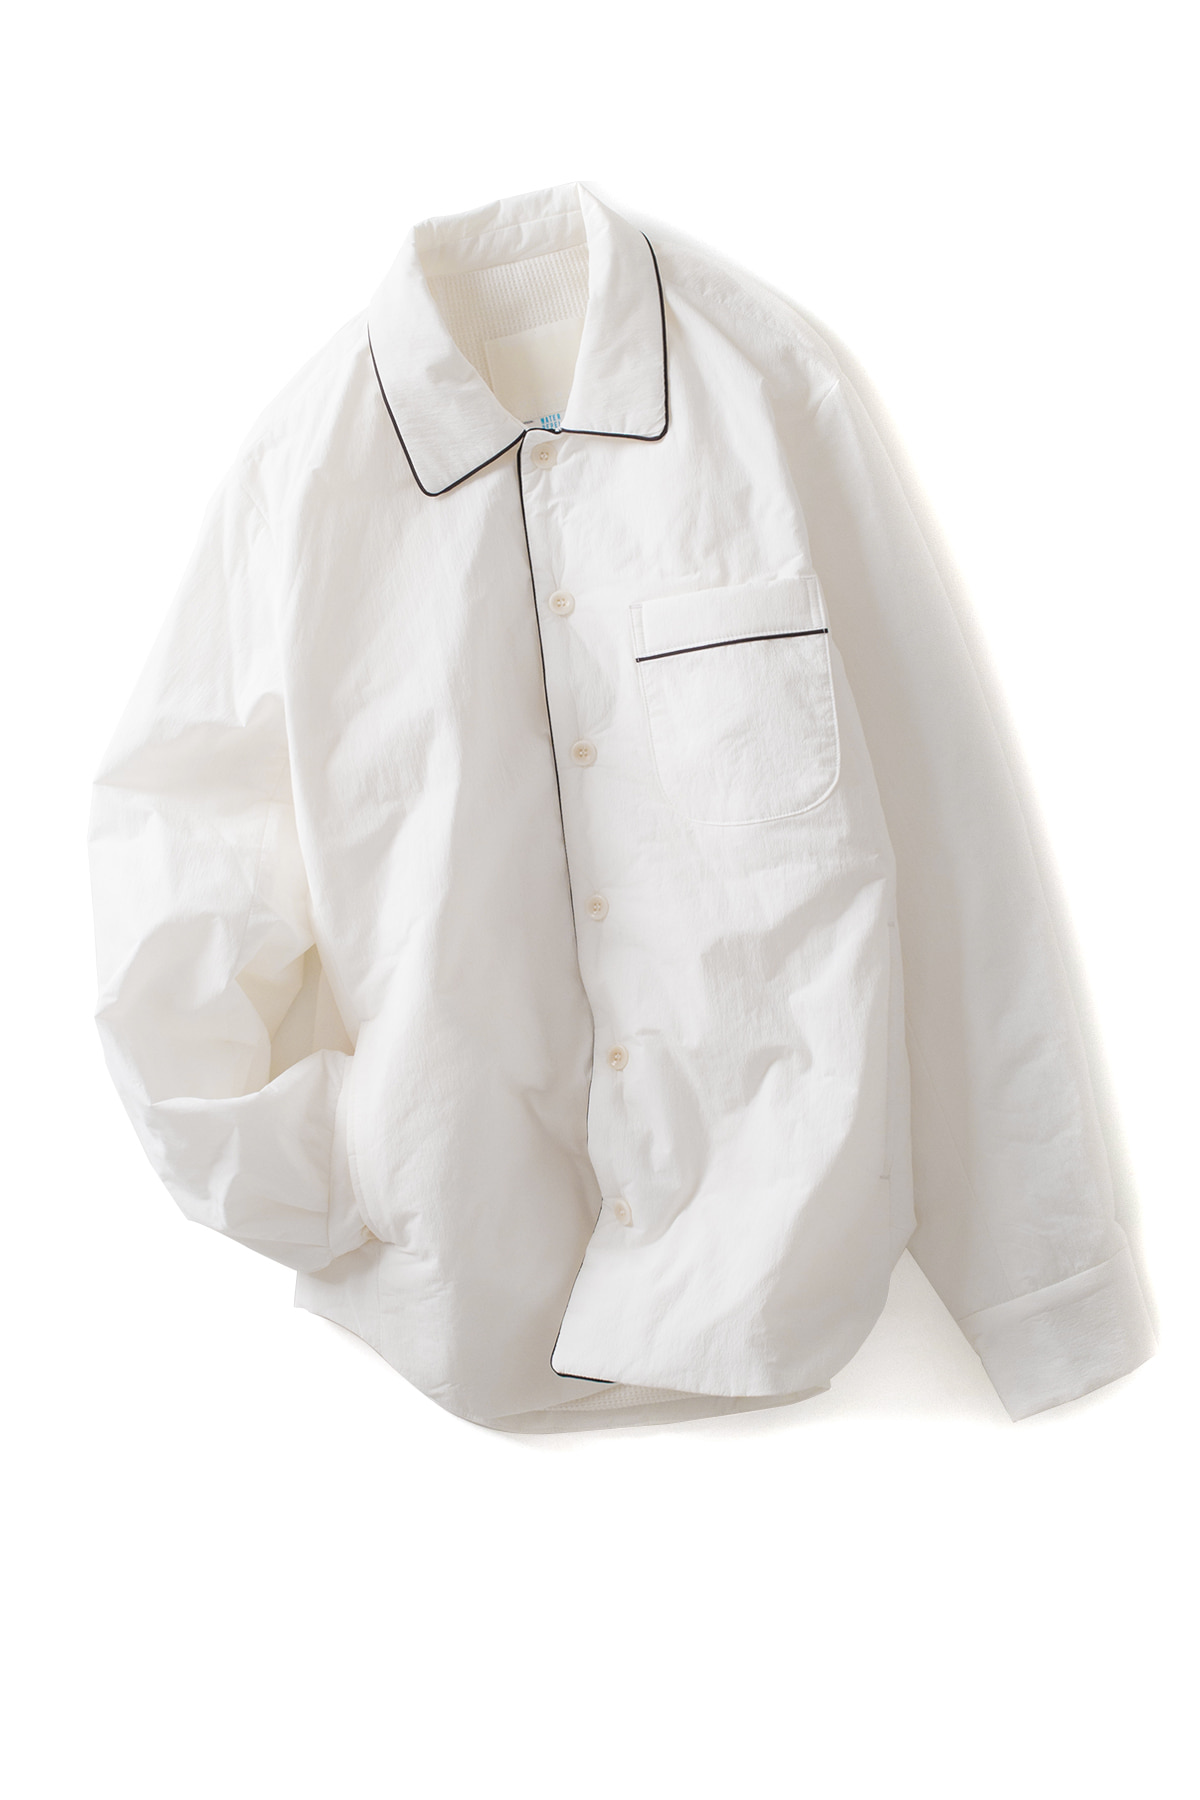 Document : Padded Pajama Shirt (White)